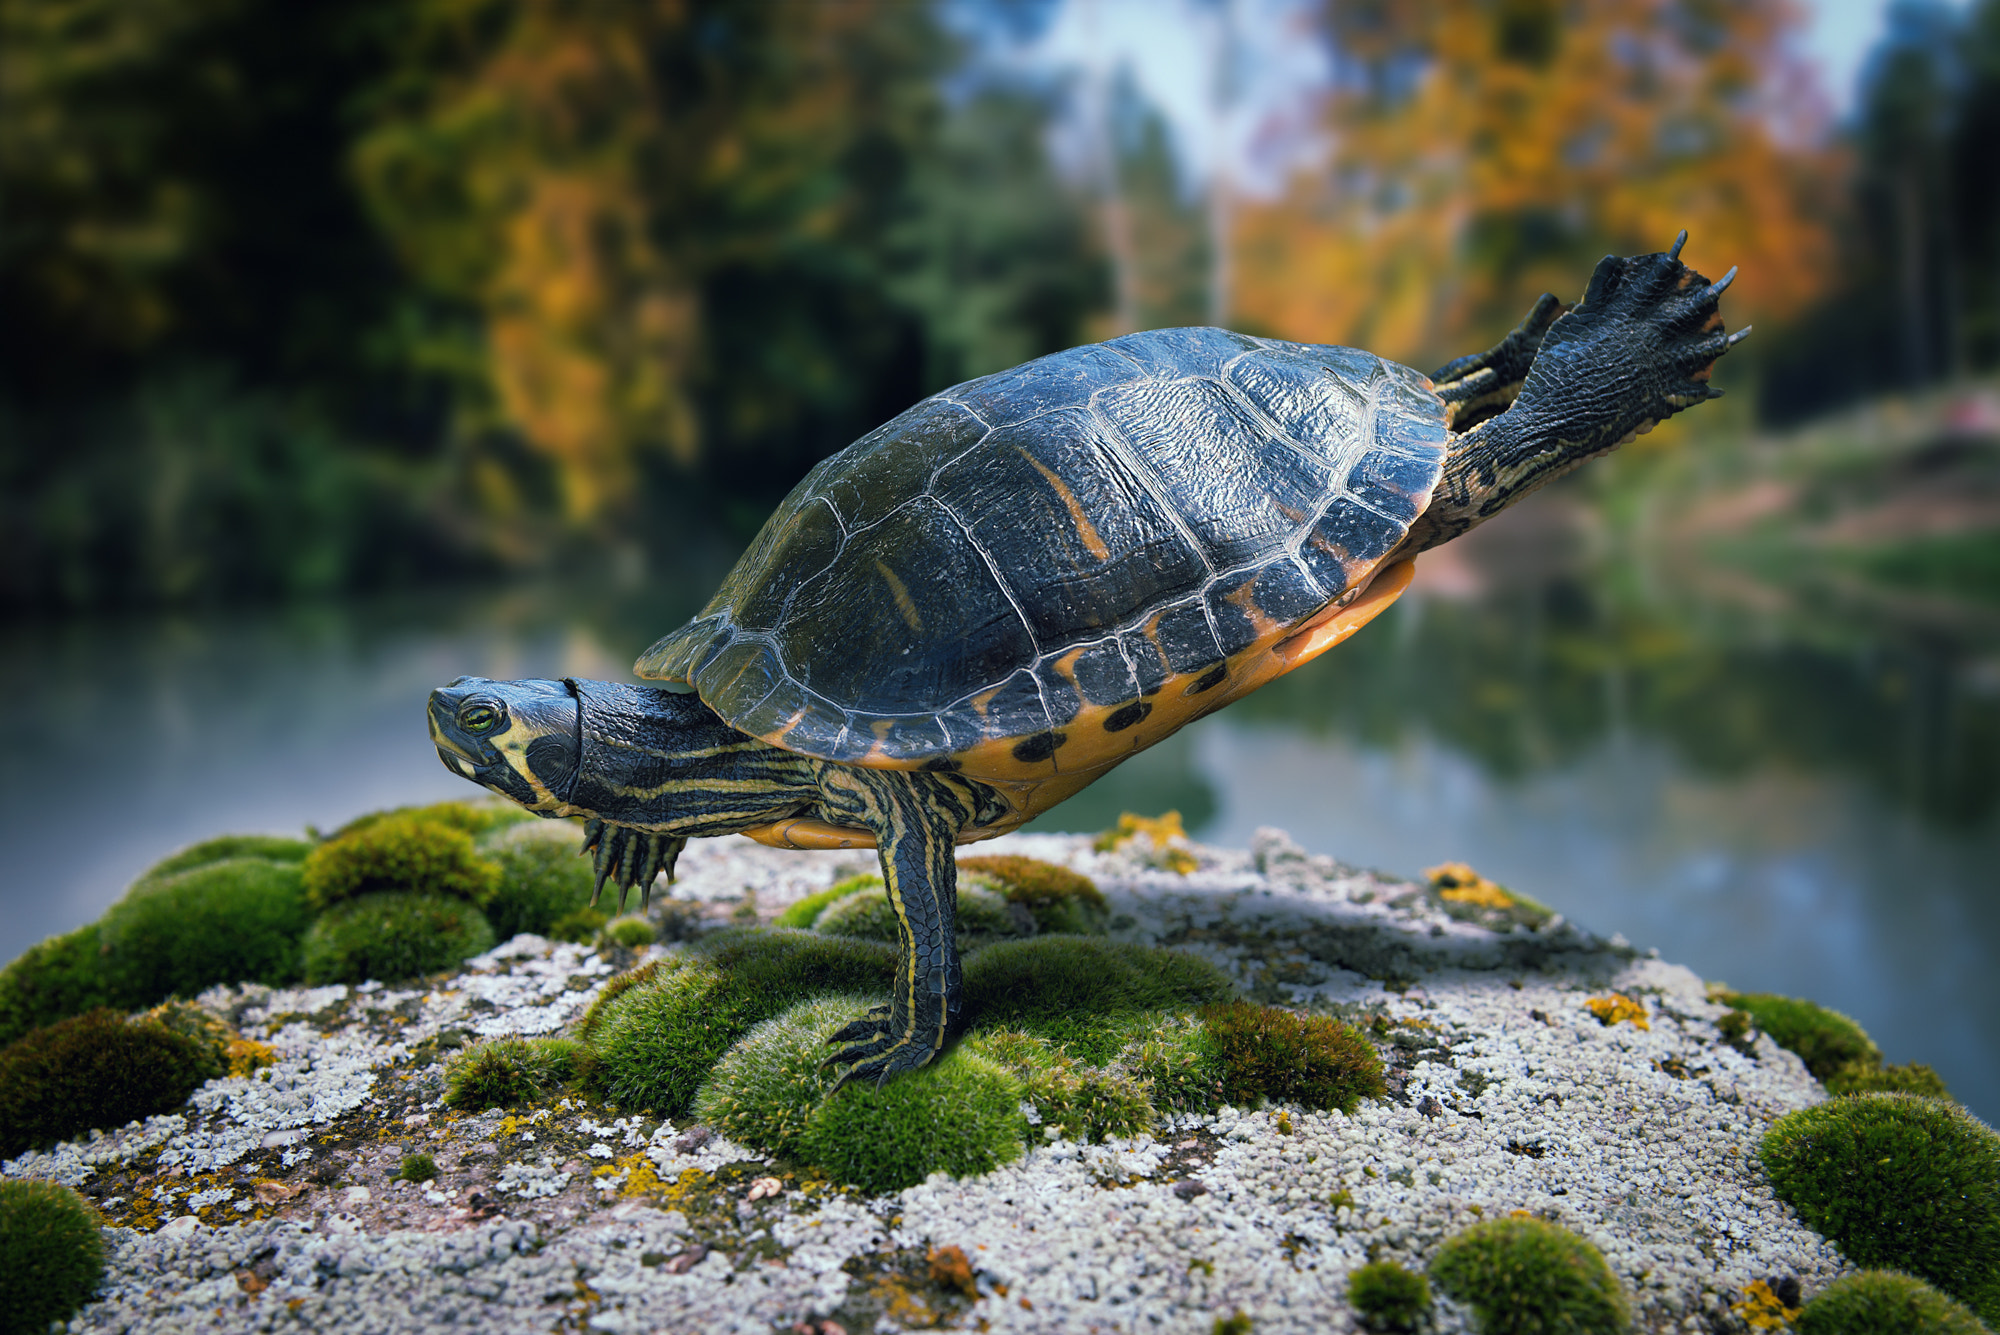 Photograph Just an exercising ninja turtle by John Wilhelm is a photoholic on 500px